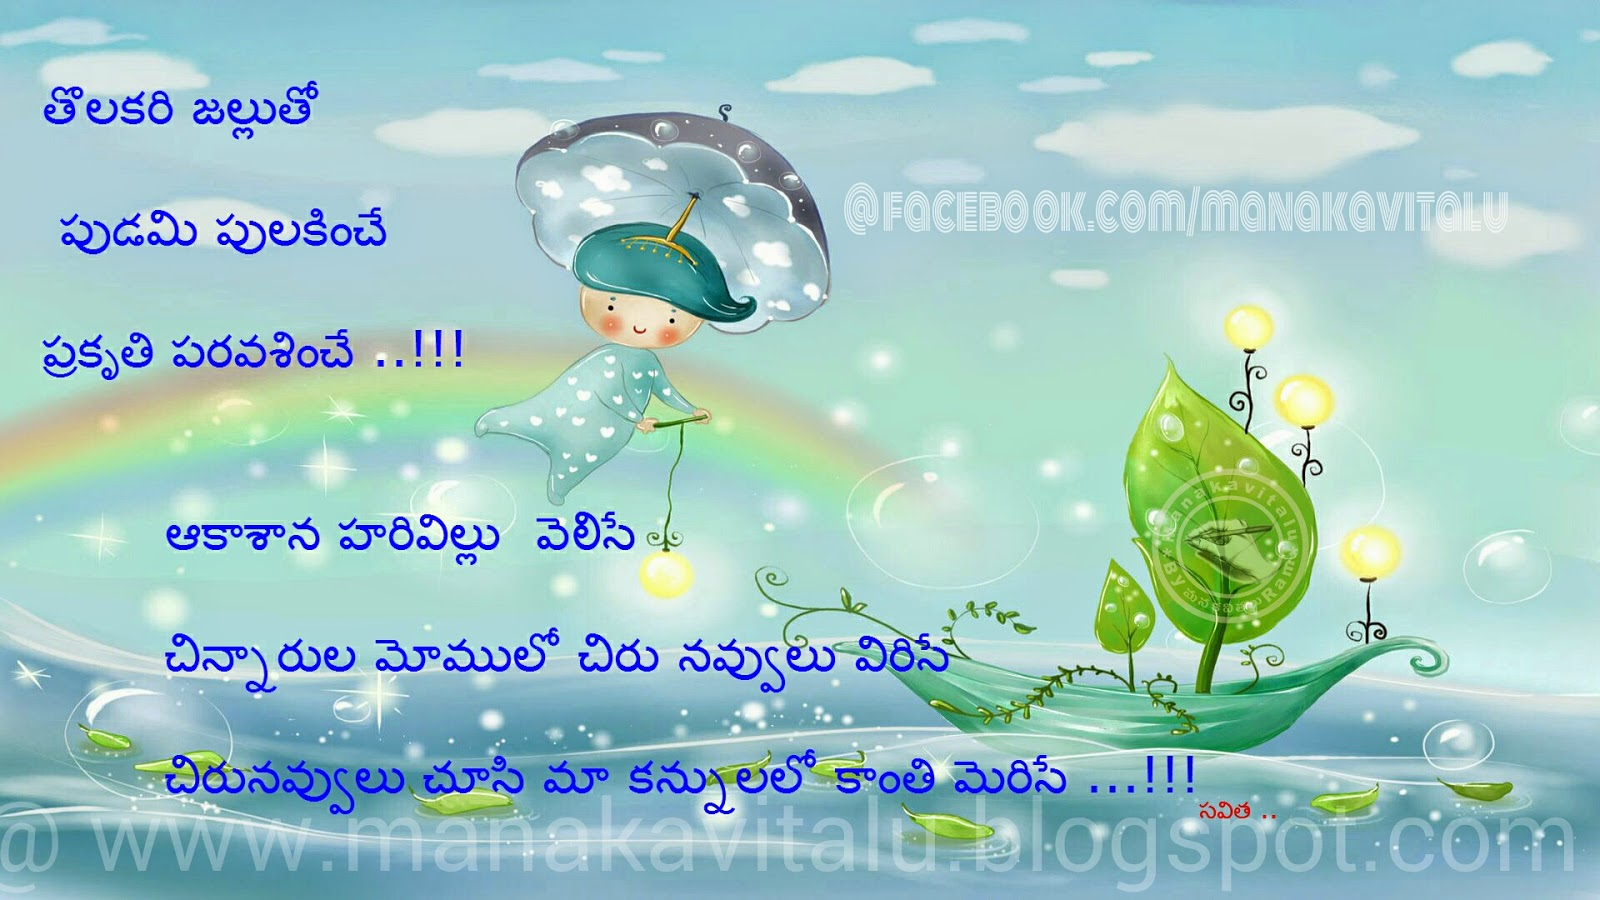 rain poet in Telugu on images by Manakavitalu